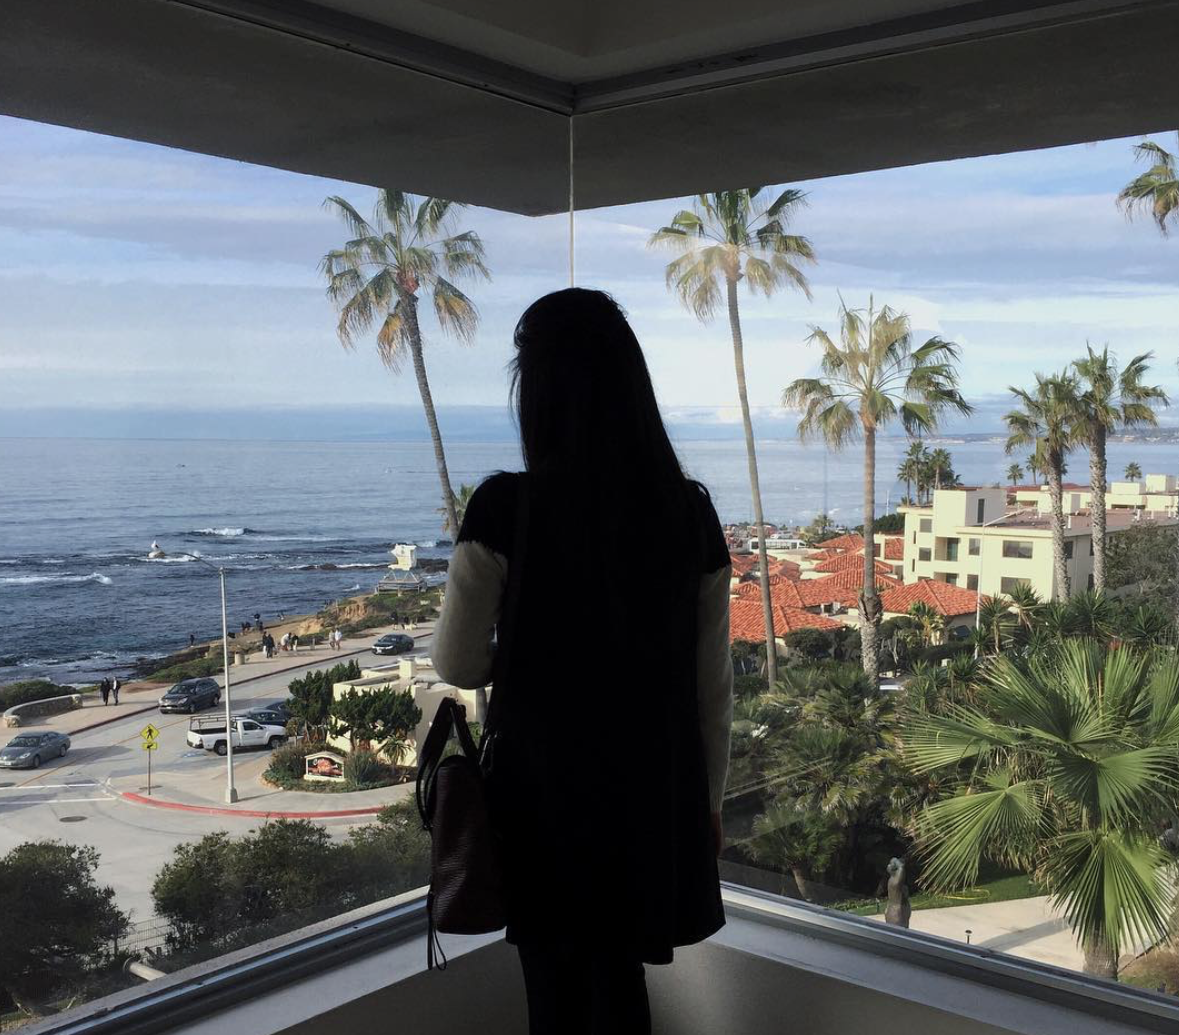 San Diego Museums_Big Window_Ocean View_La Jolla Museum_Museum of Contemporary Art in San Diego_Adrienne Nguyen_Palm Trees_California